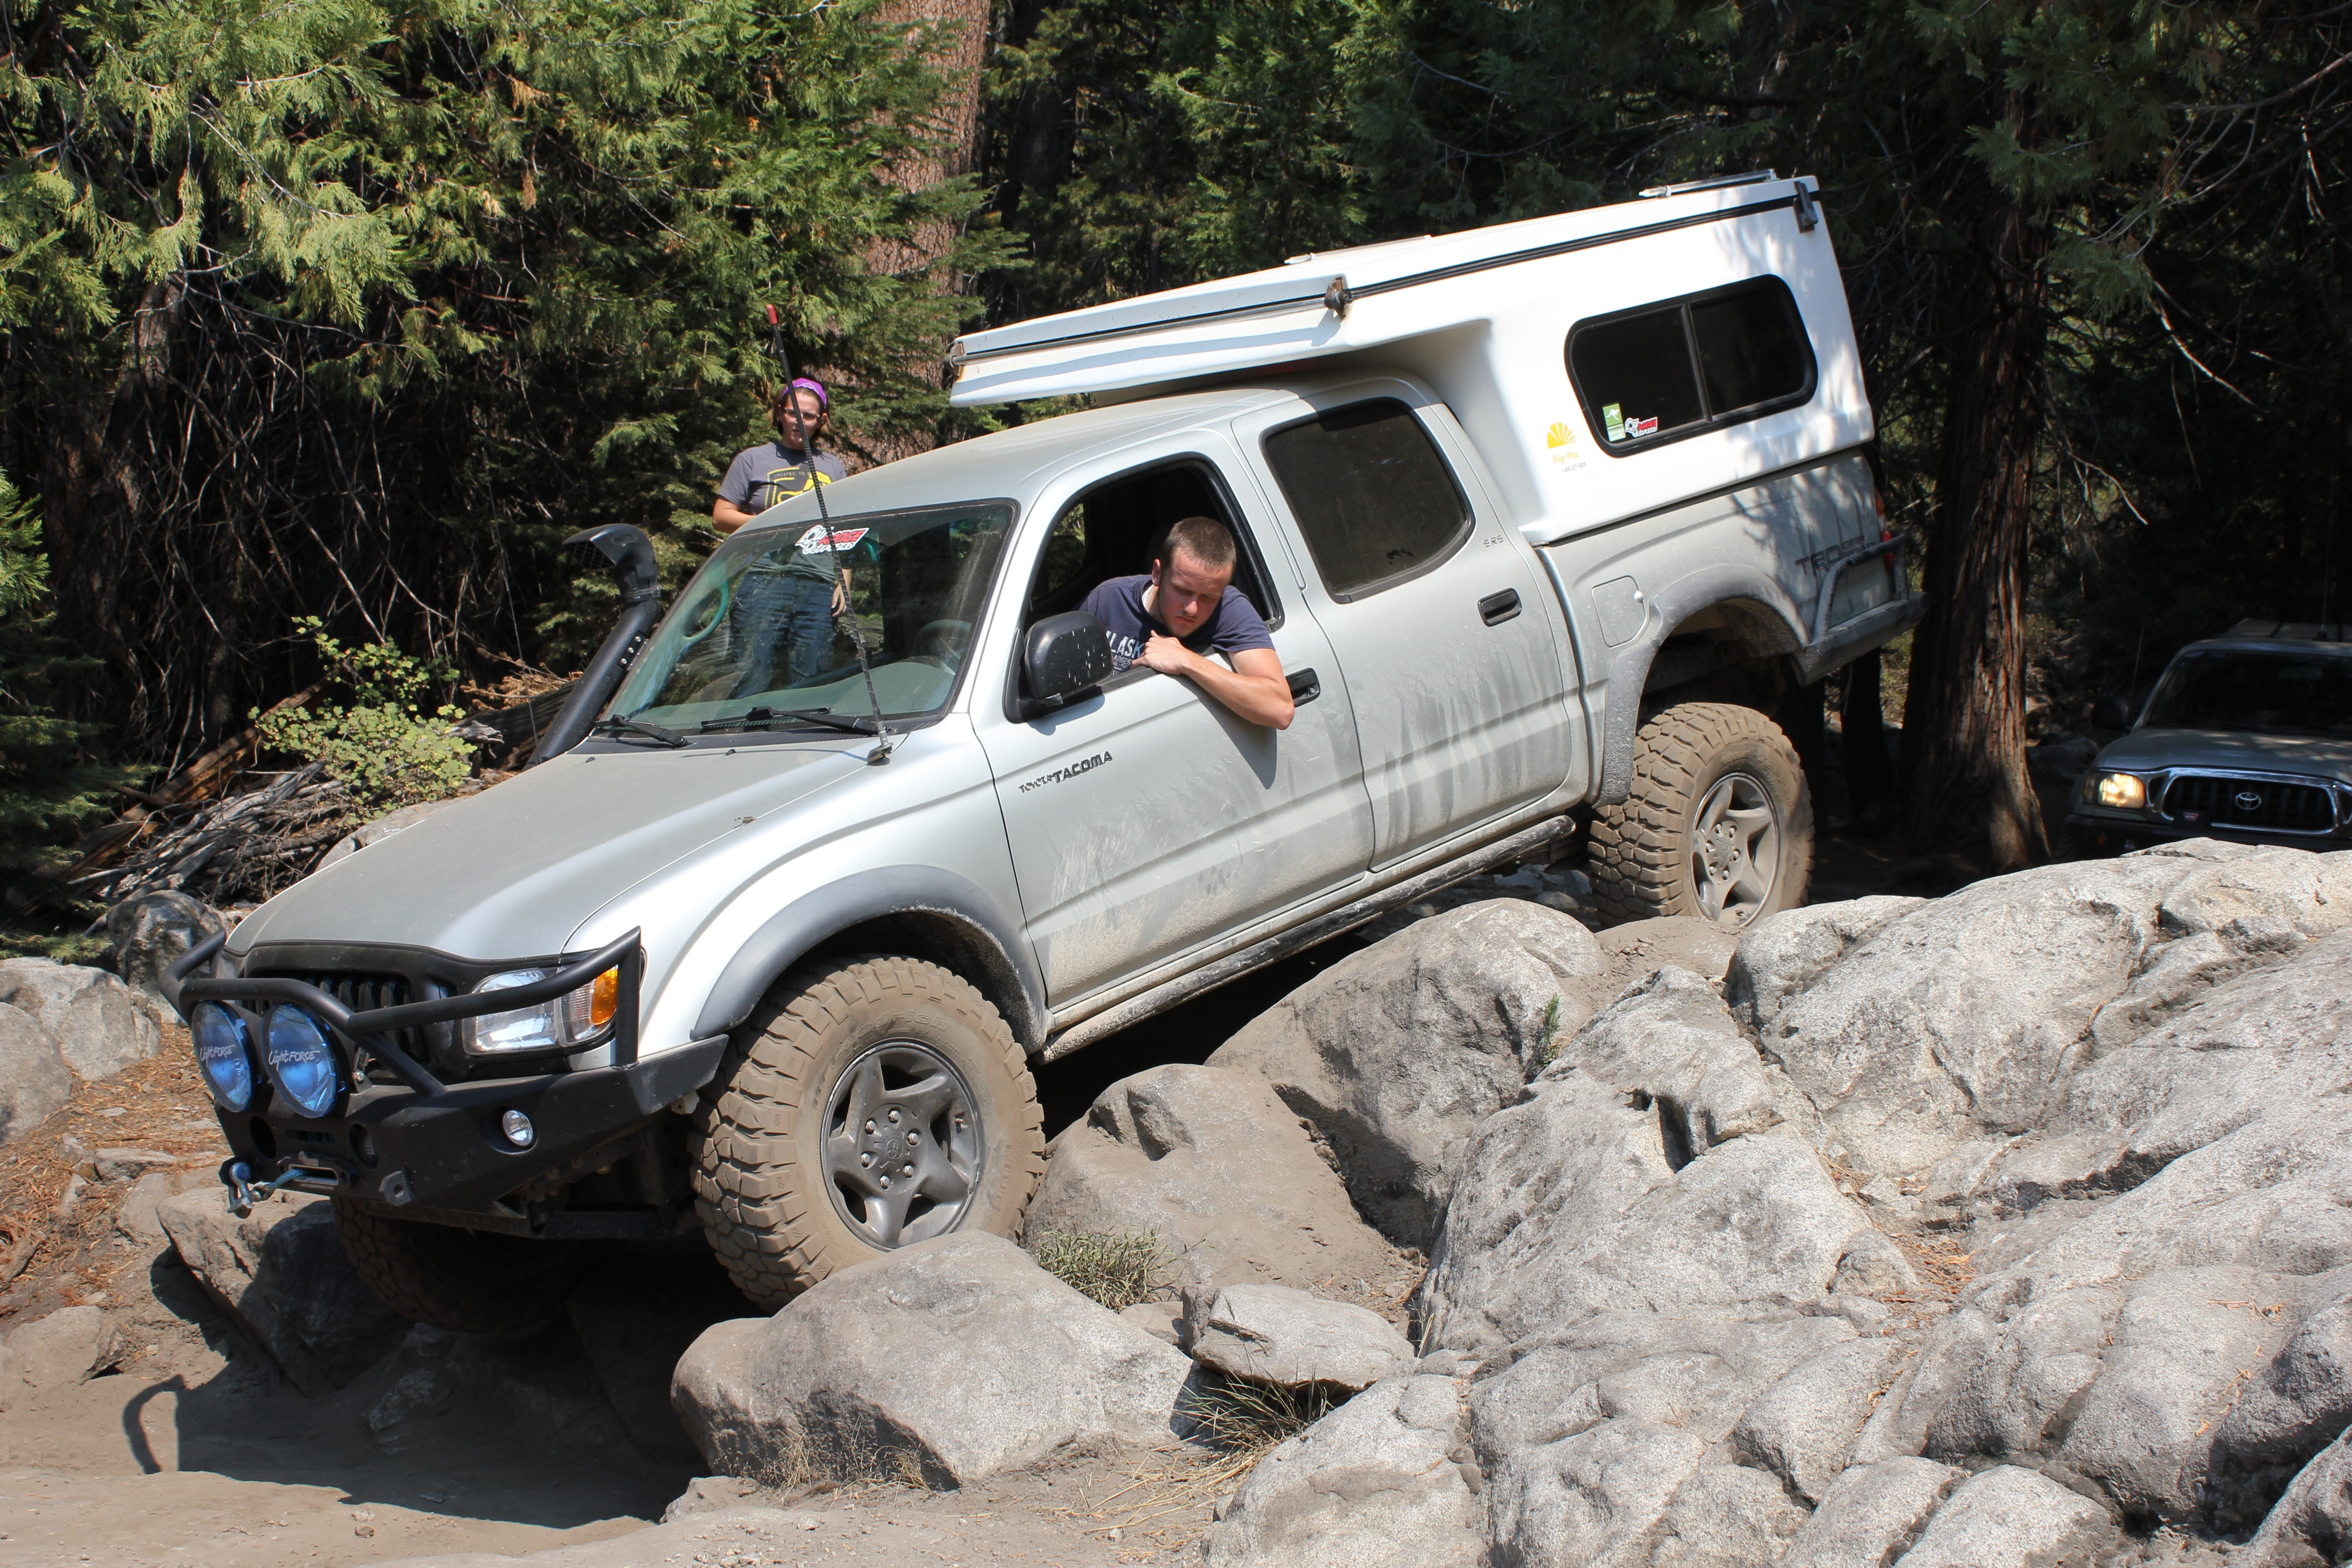 Cadillac Hill on the Rubicon Trail